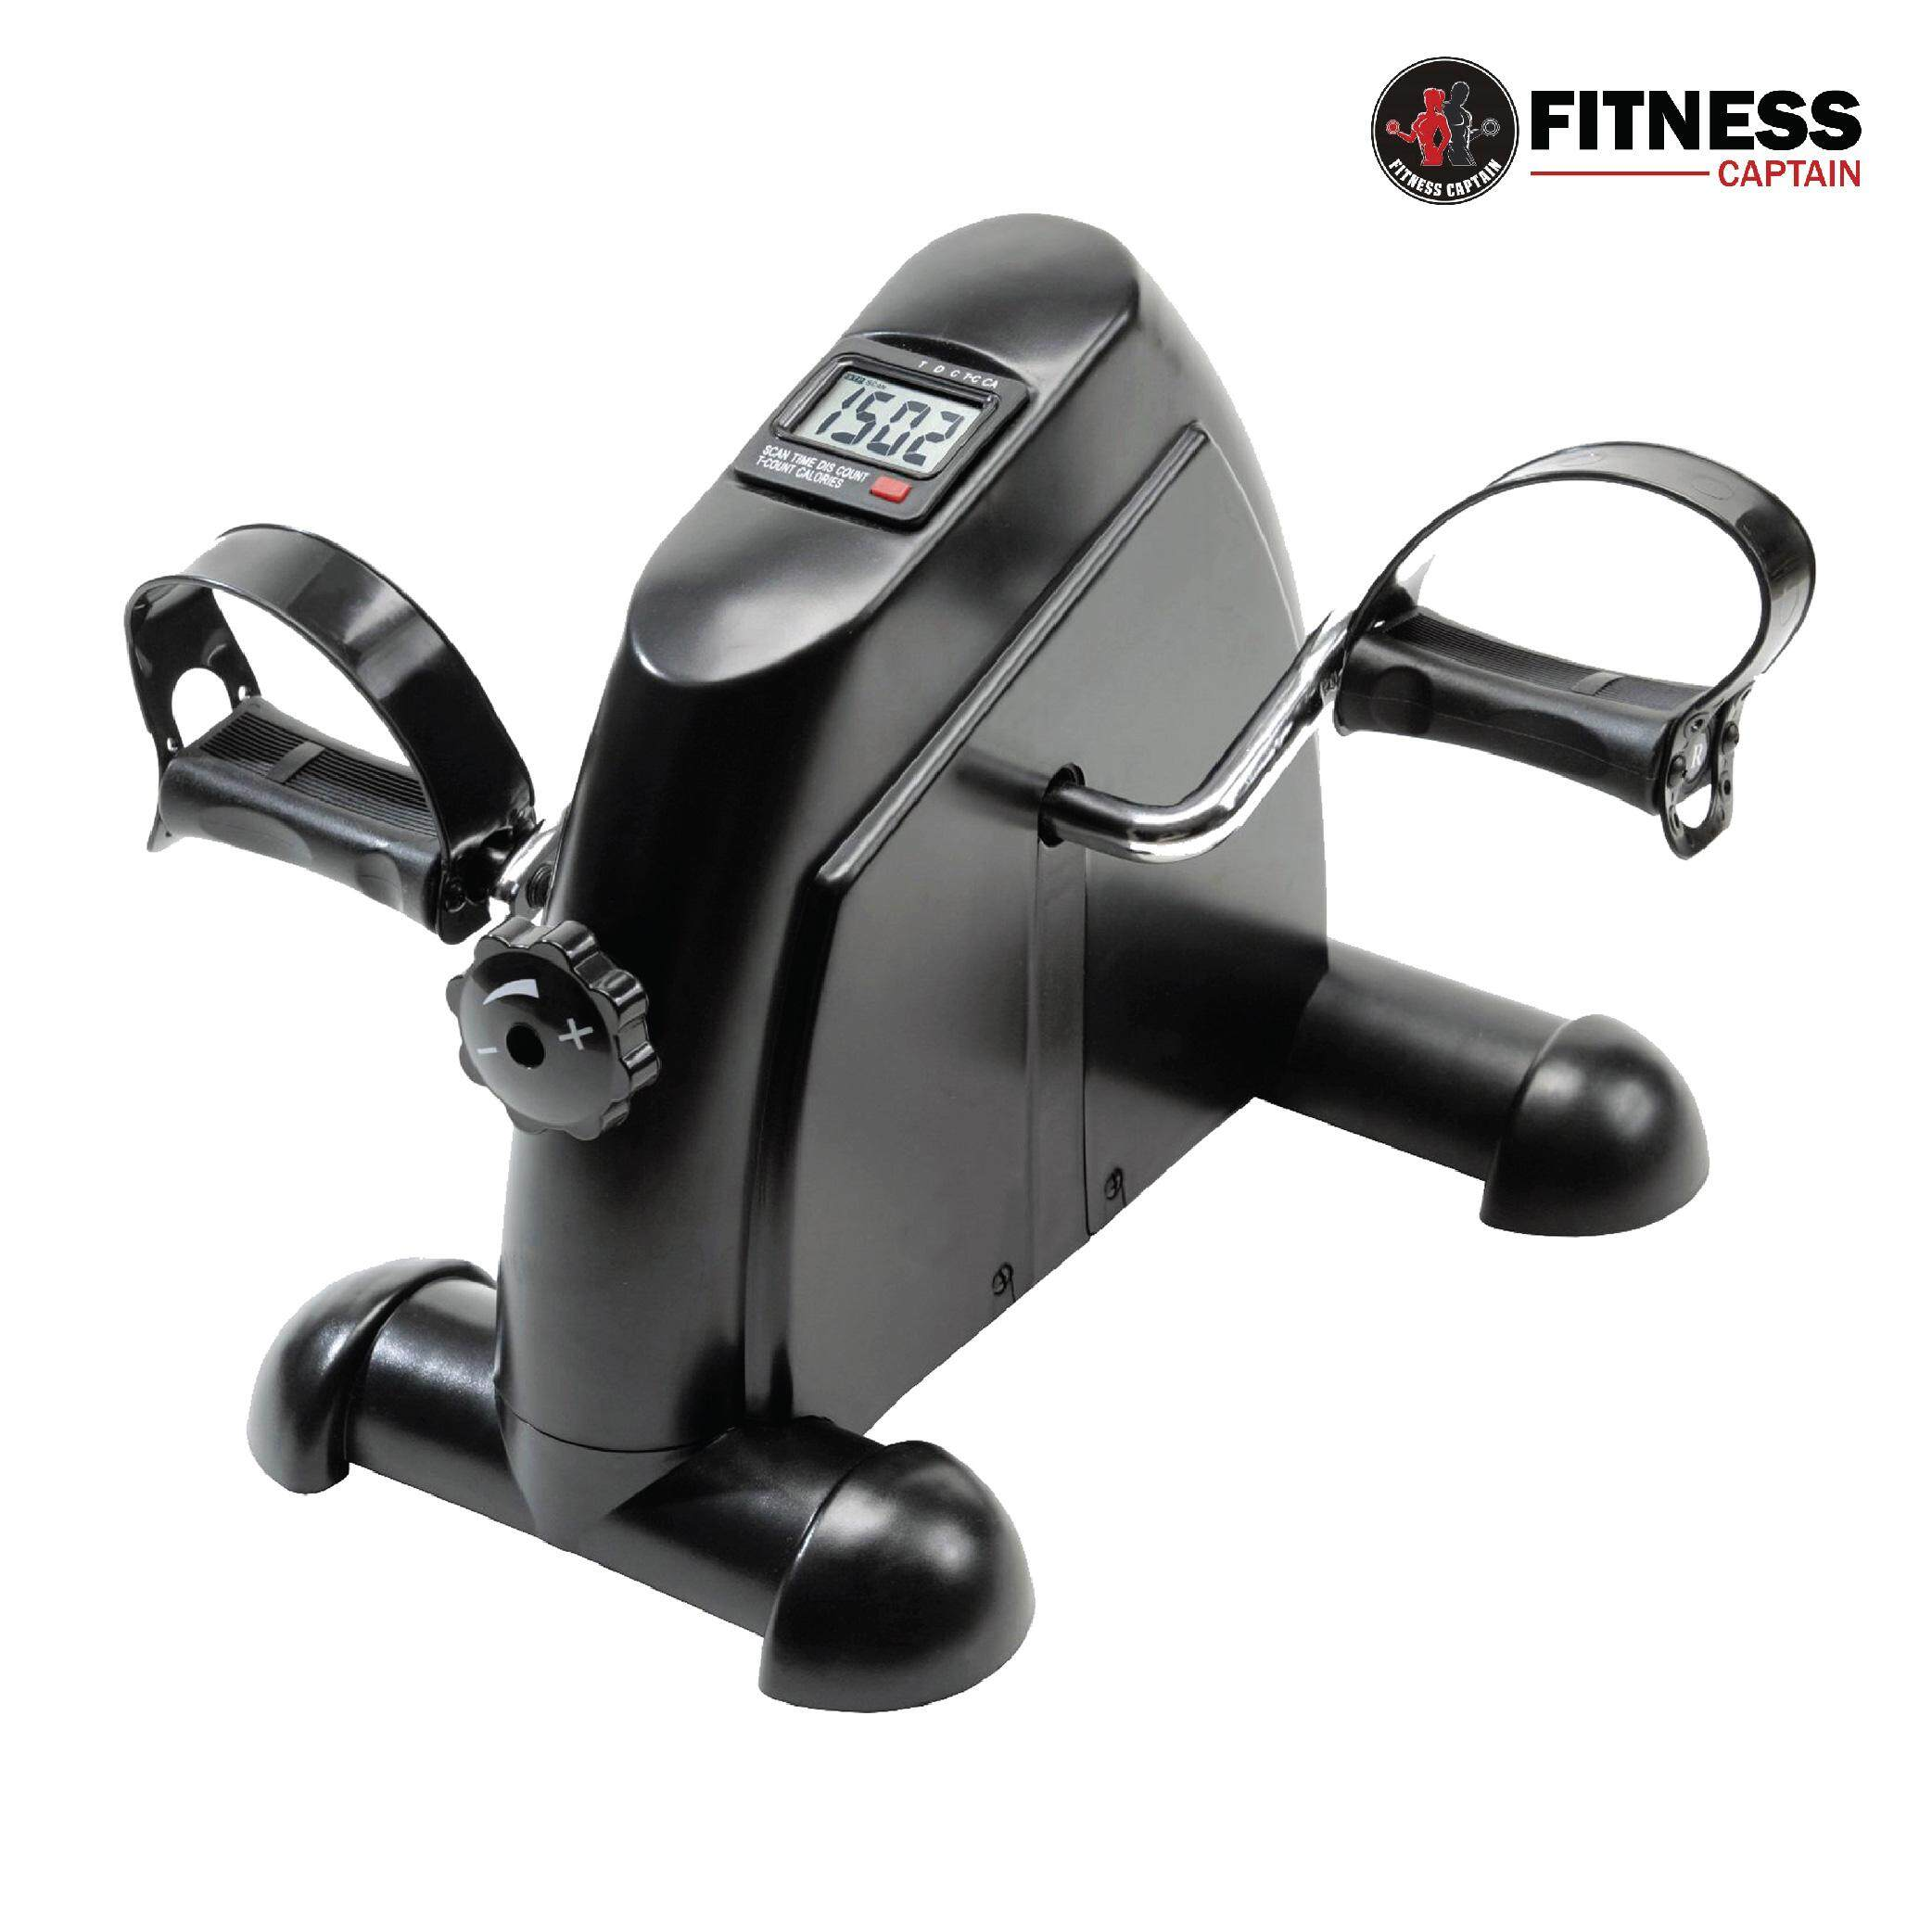 Fitness Captain Mini Portable Hand Foot Cardio Cycle Exercise Pedal Bike